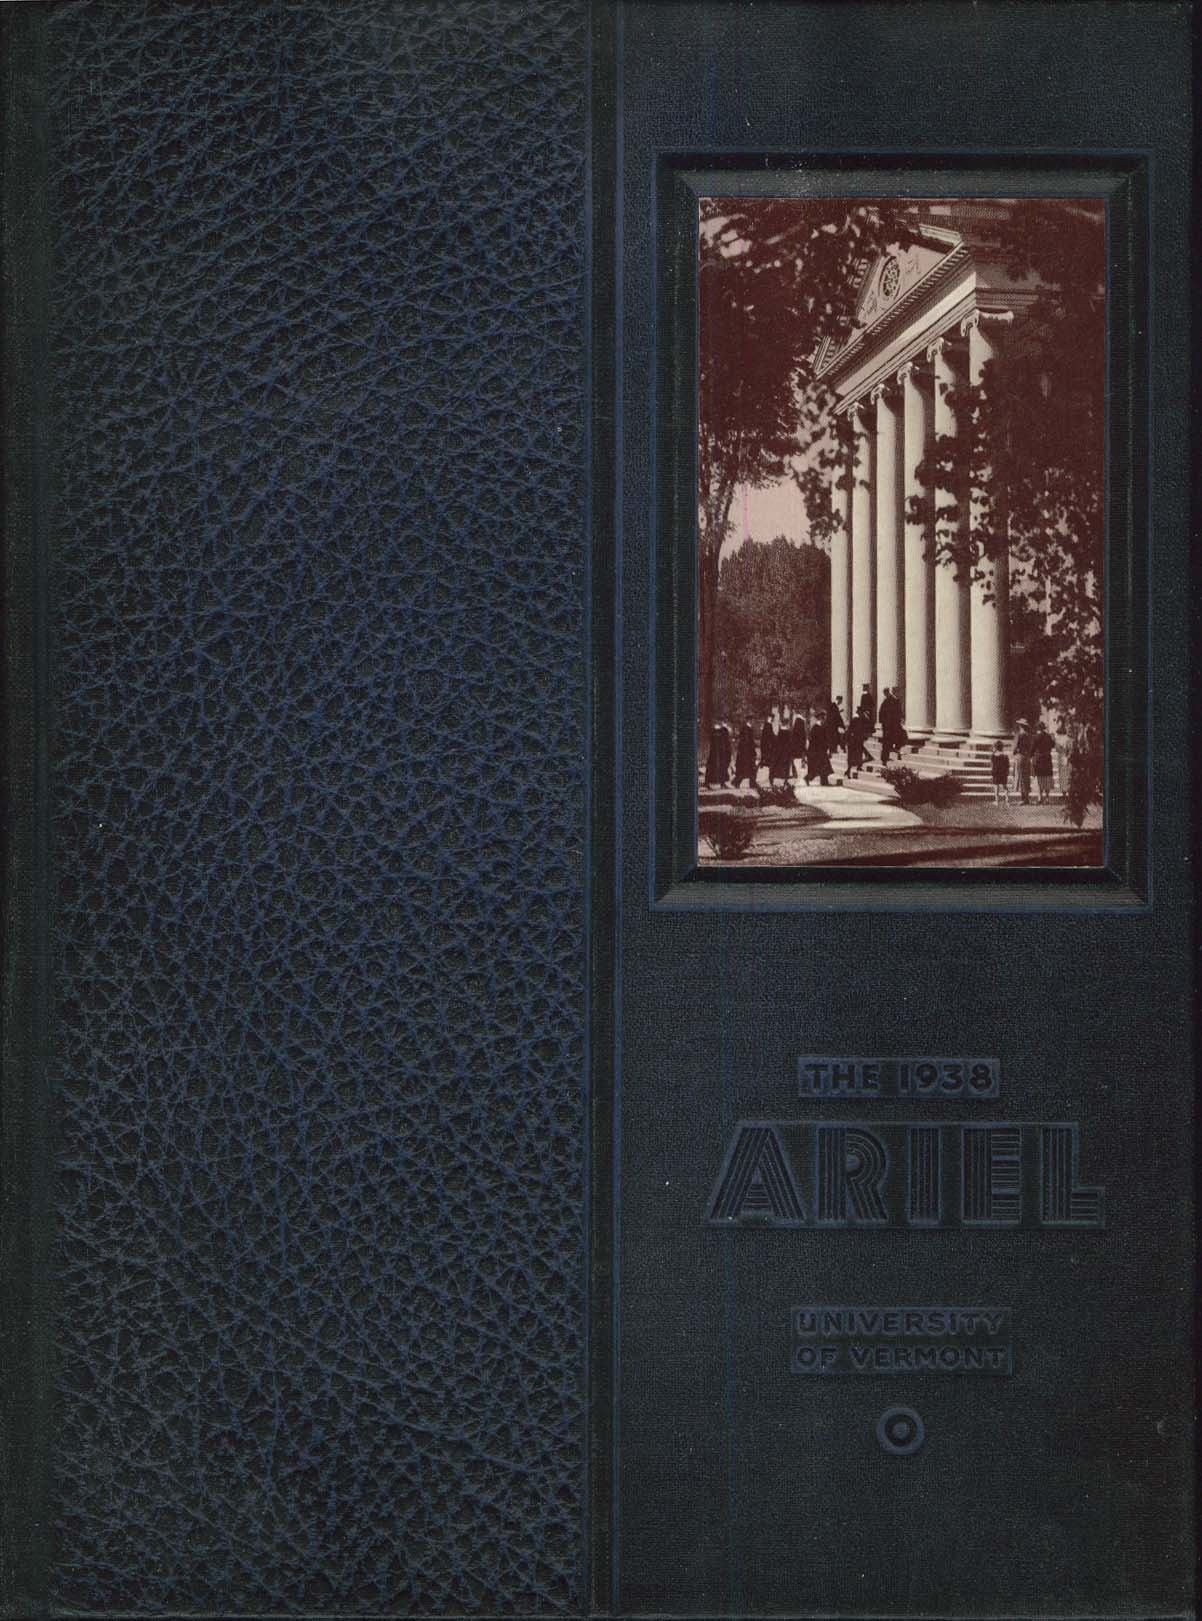 Image for 1938 Ariel University of Vermont Burlington VT Yearbook